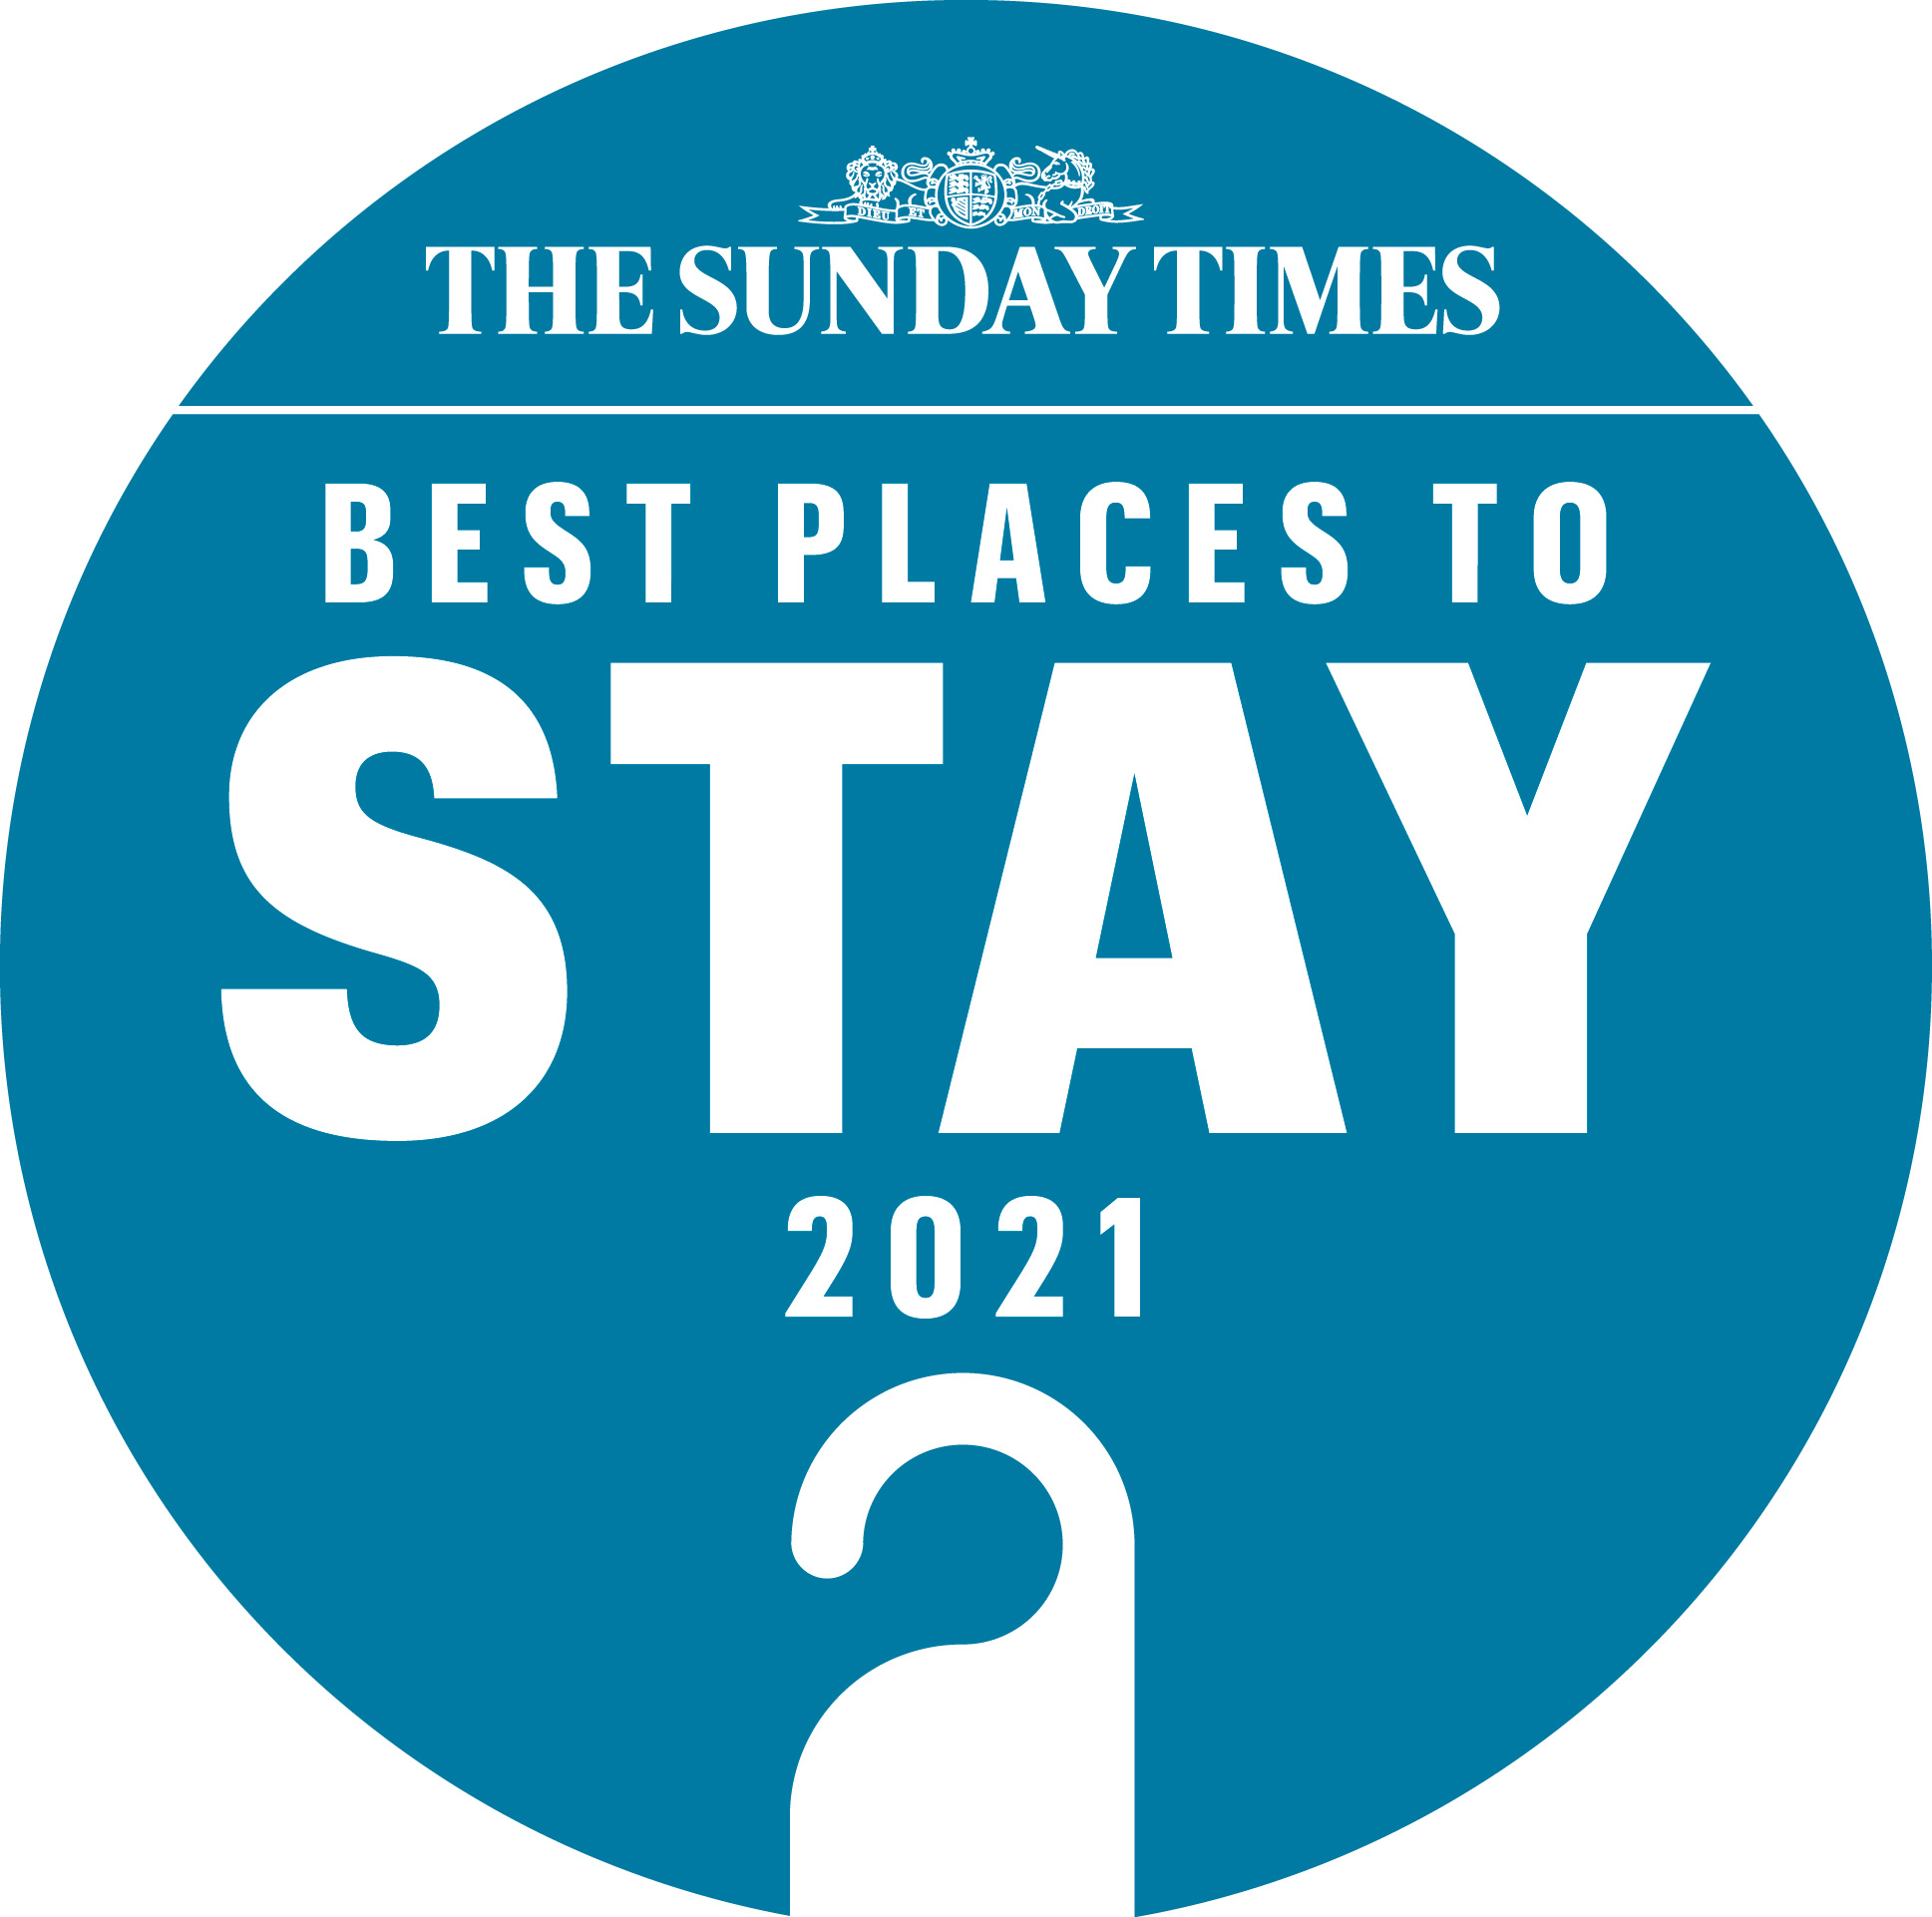 The Sunday Times Best Places to Stay 2021